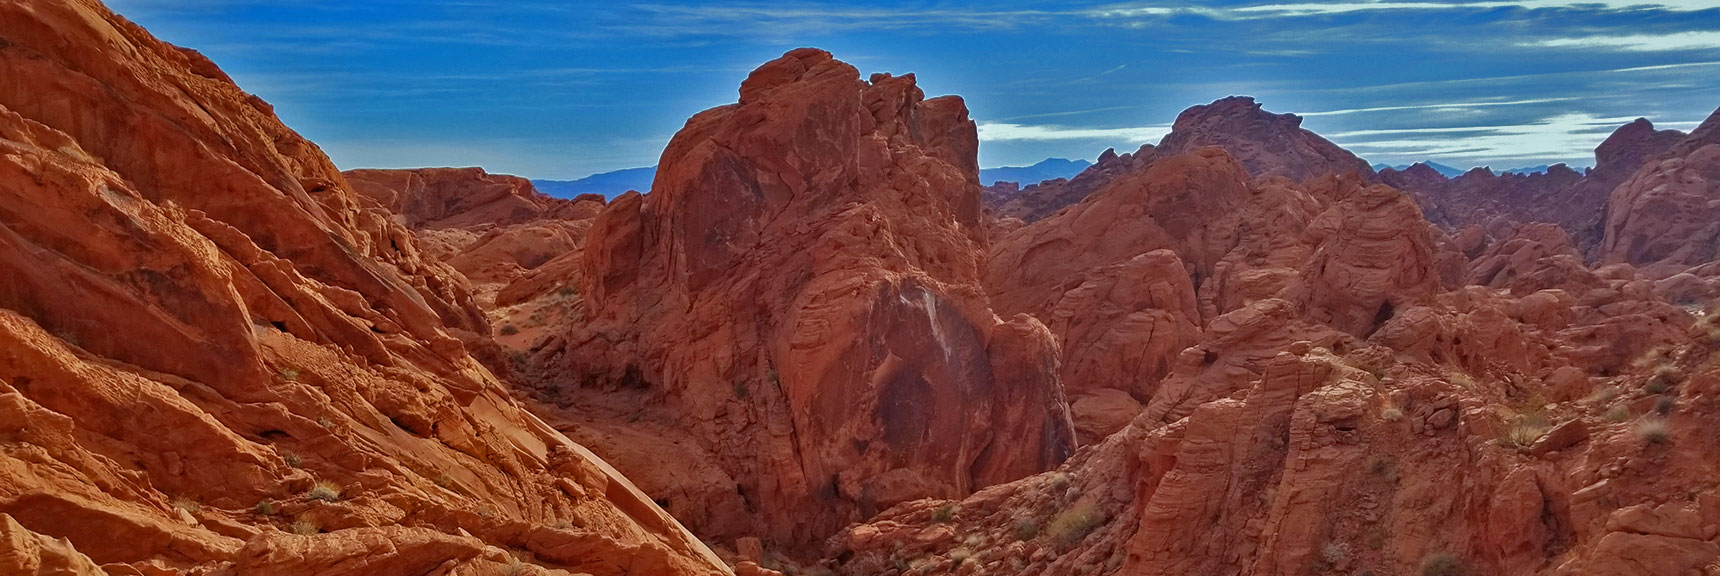 Fire Canyon in Valley of Fire State Park, Nevada, Overlook on the Rainbow Vista Trail